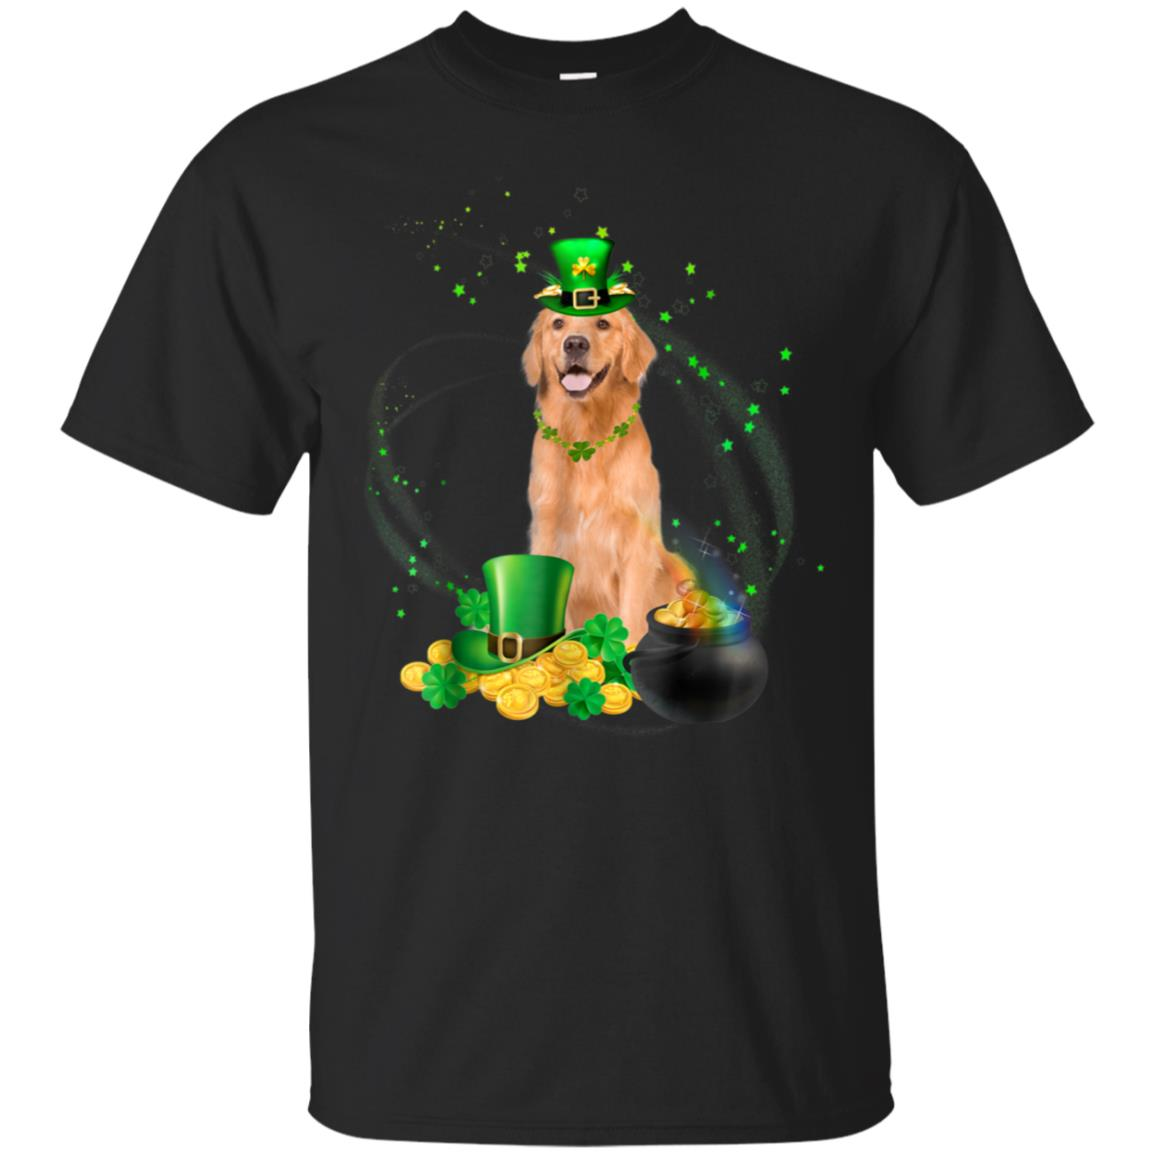 Golden Retriever Patrick's Day T-Shirt- Golden Retriever 99promocode